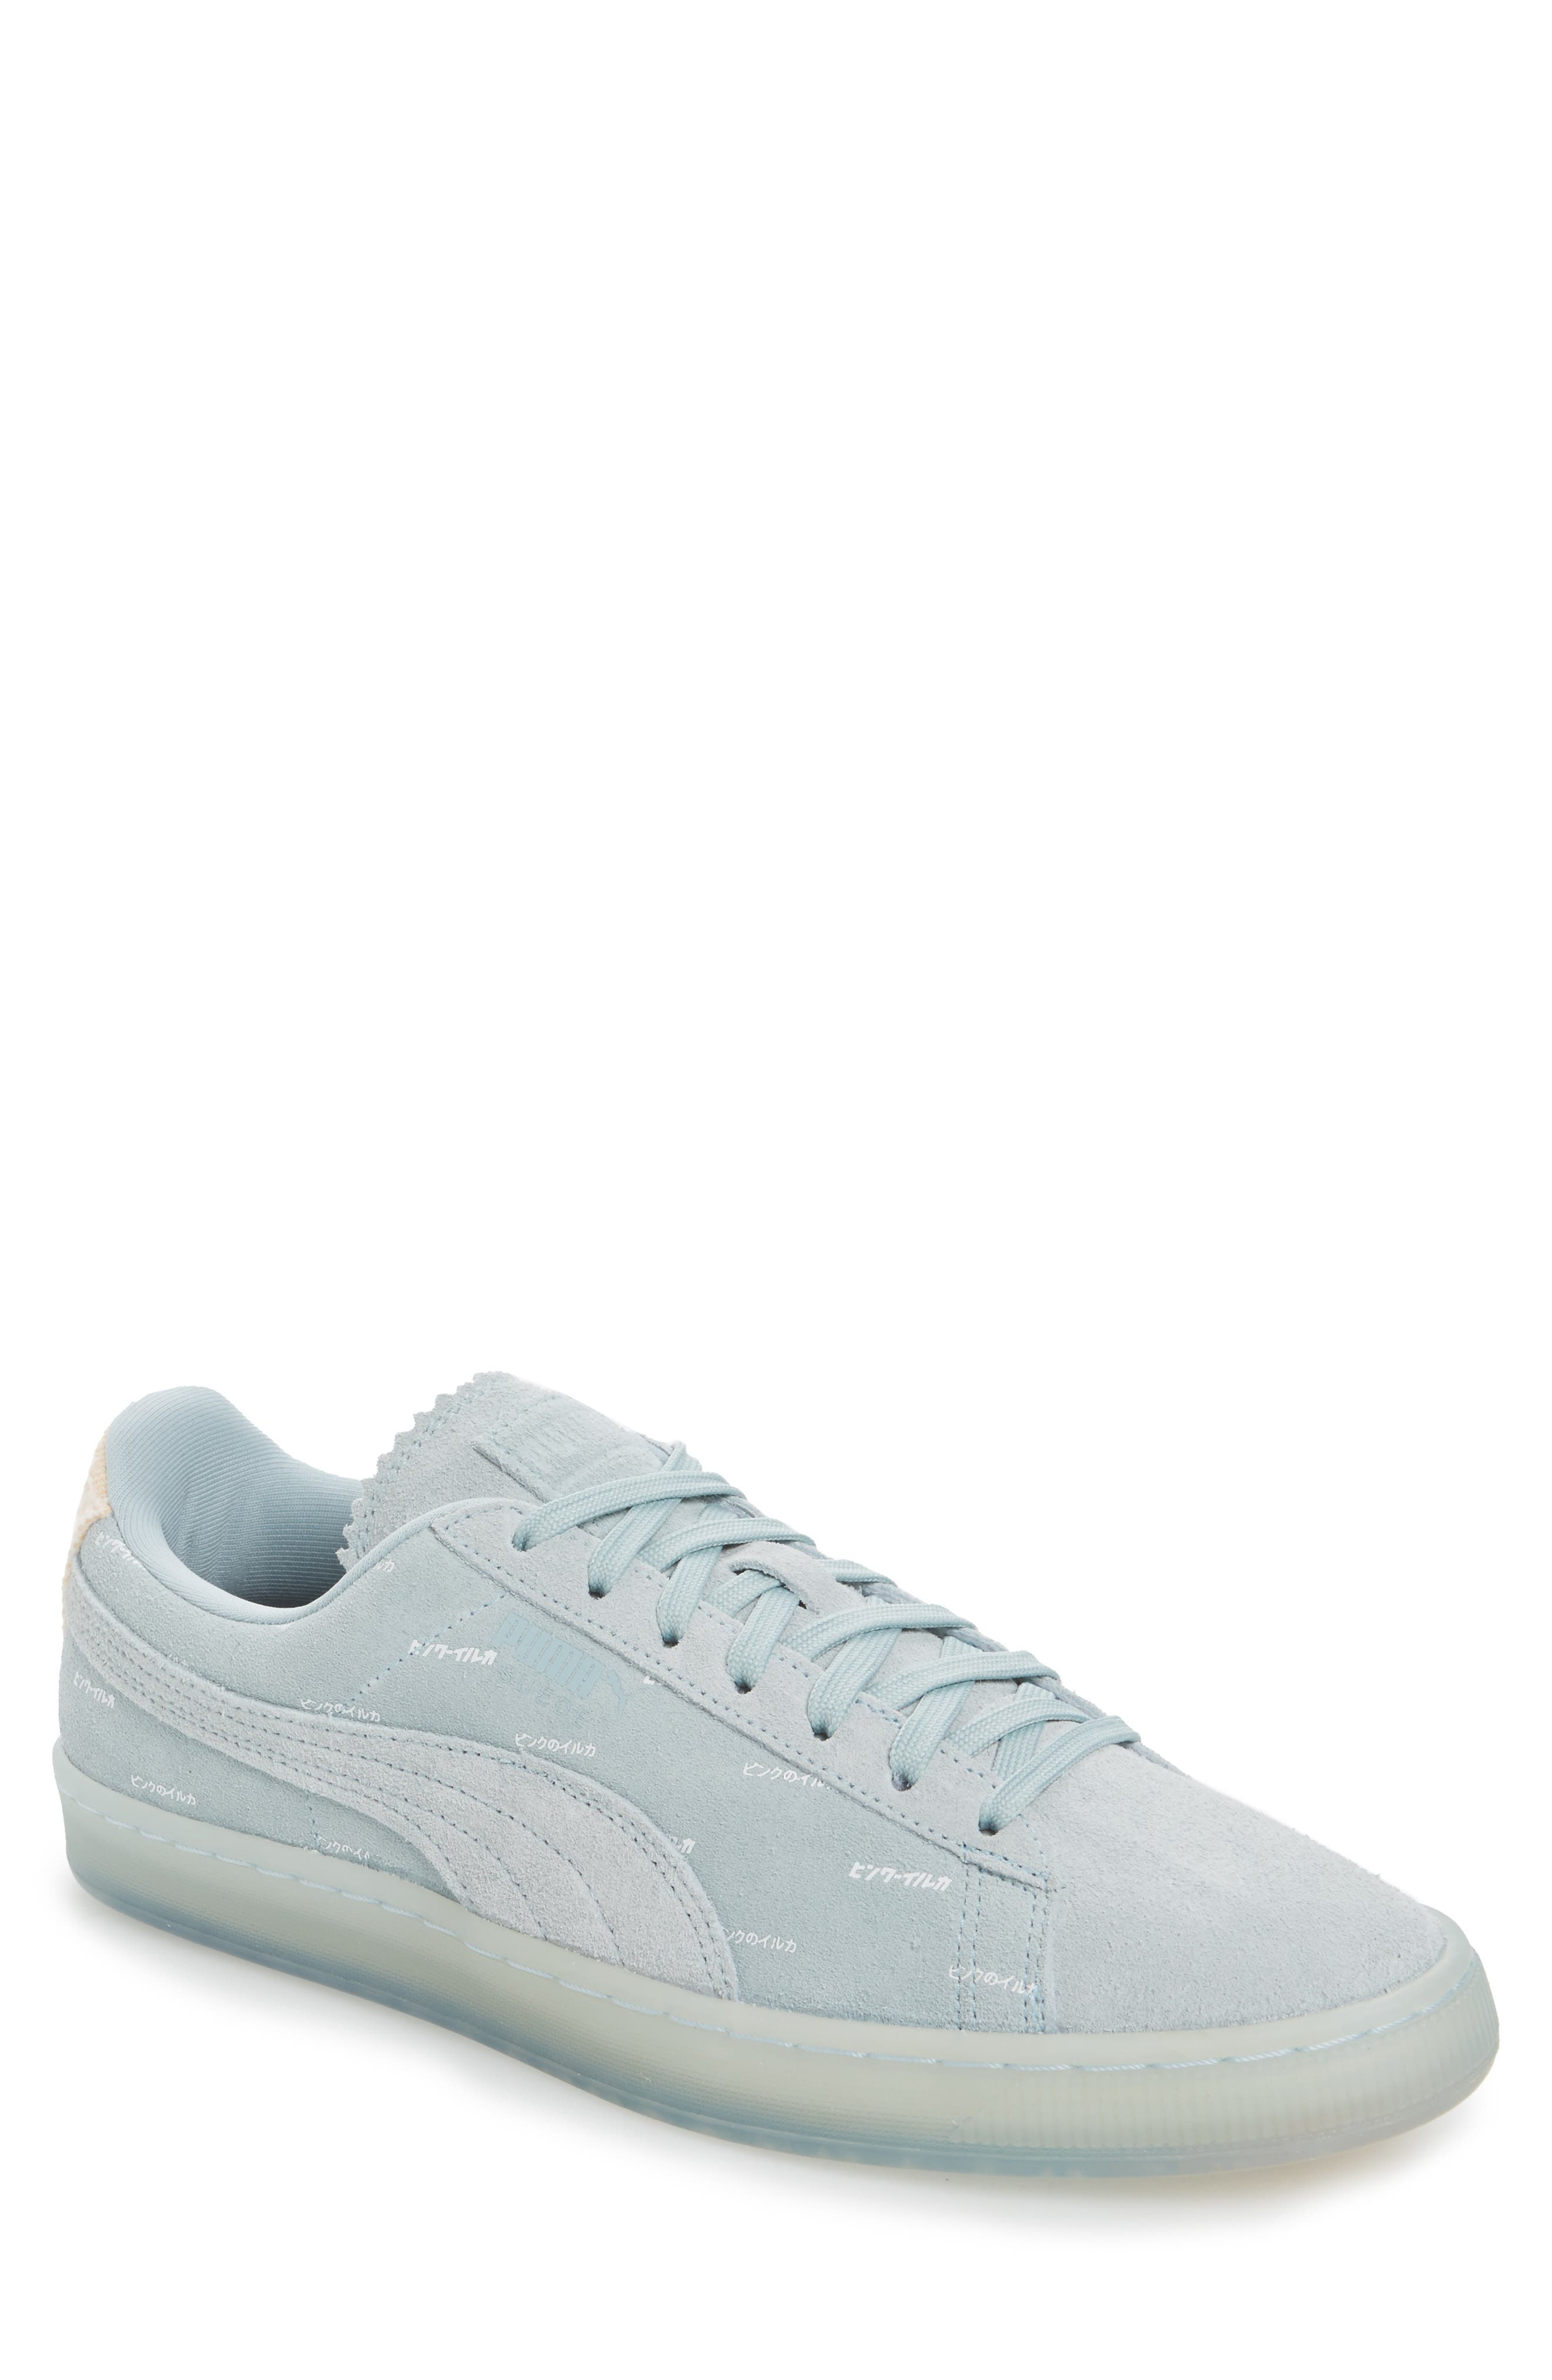 Alternate Image 1 Selected - PUMA x Pink Dolphin Suede V2 Sneaker (Men)